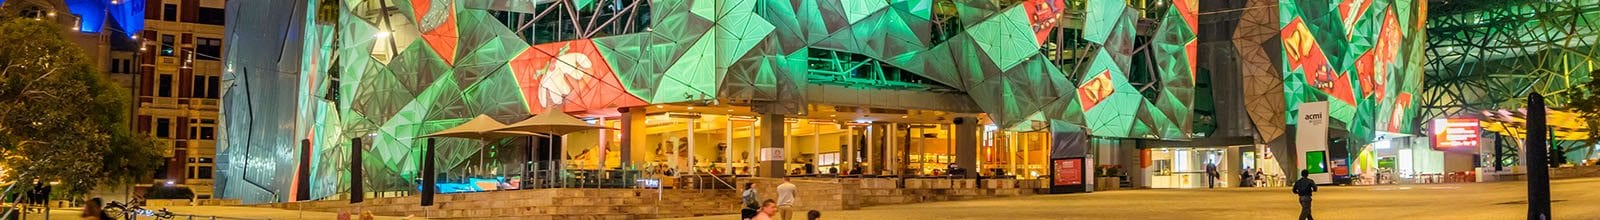 BLOG_holiday-inn-melbourne-on-flinders-christmas-bucketlist-federation-square